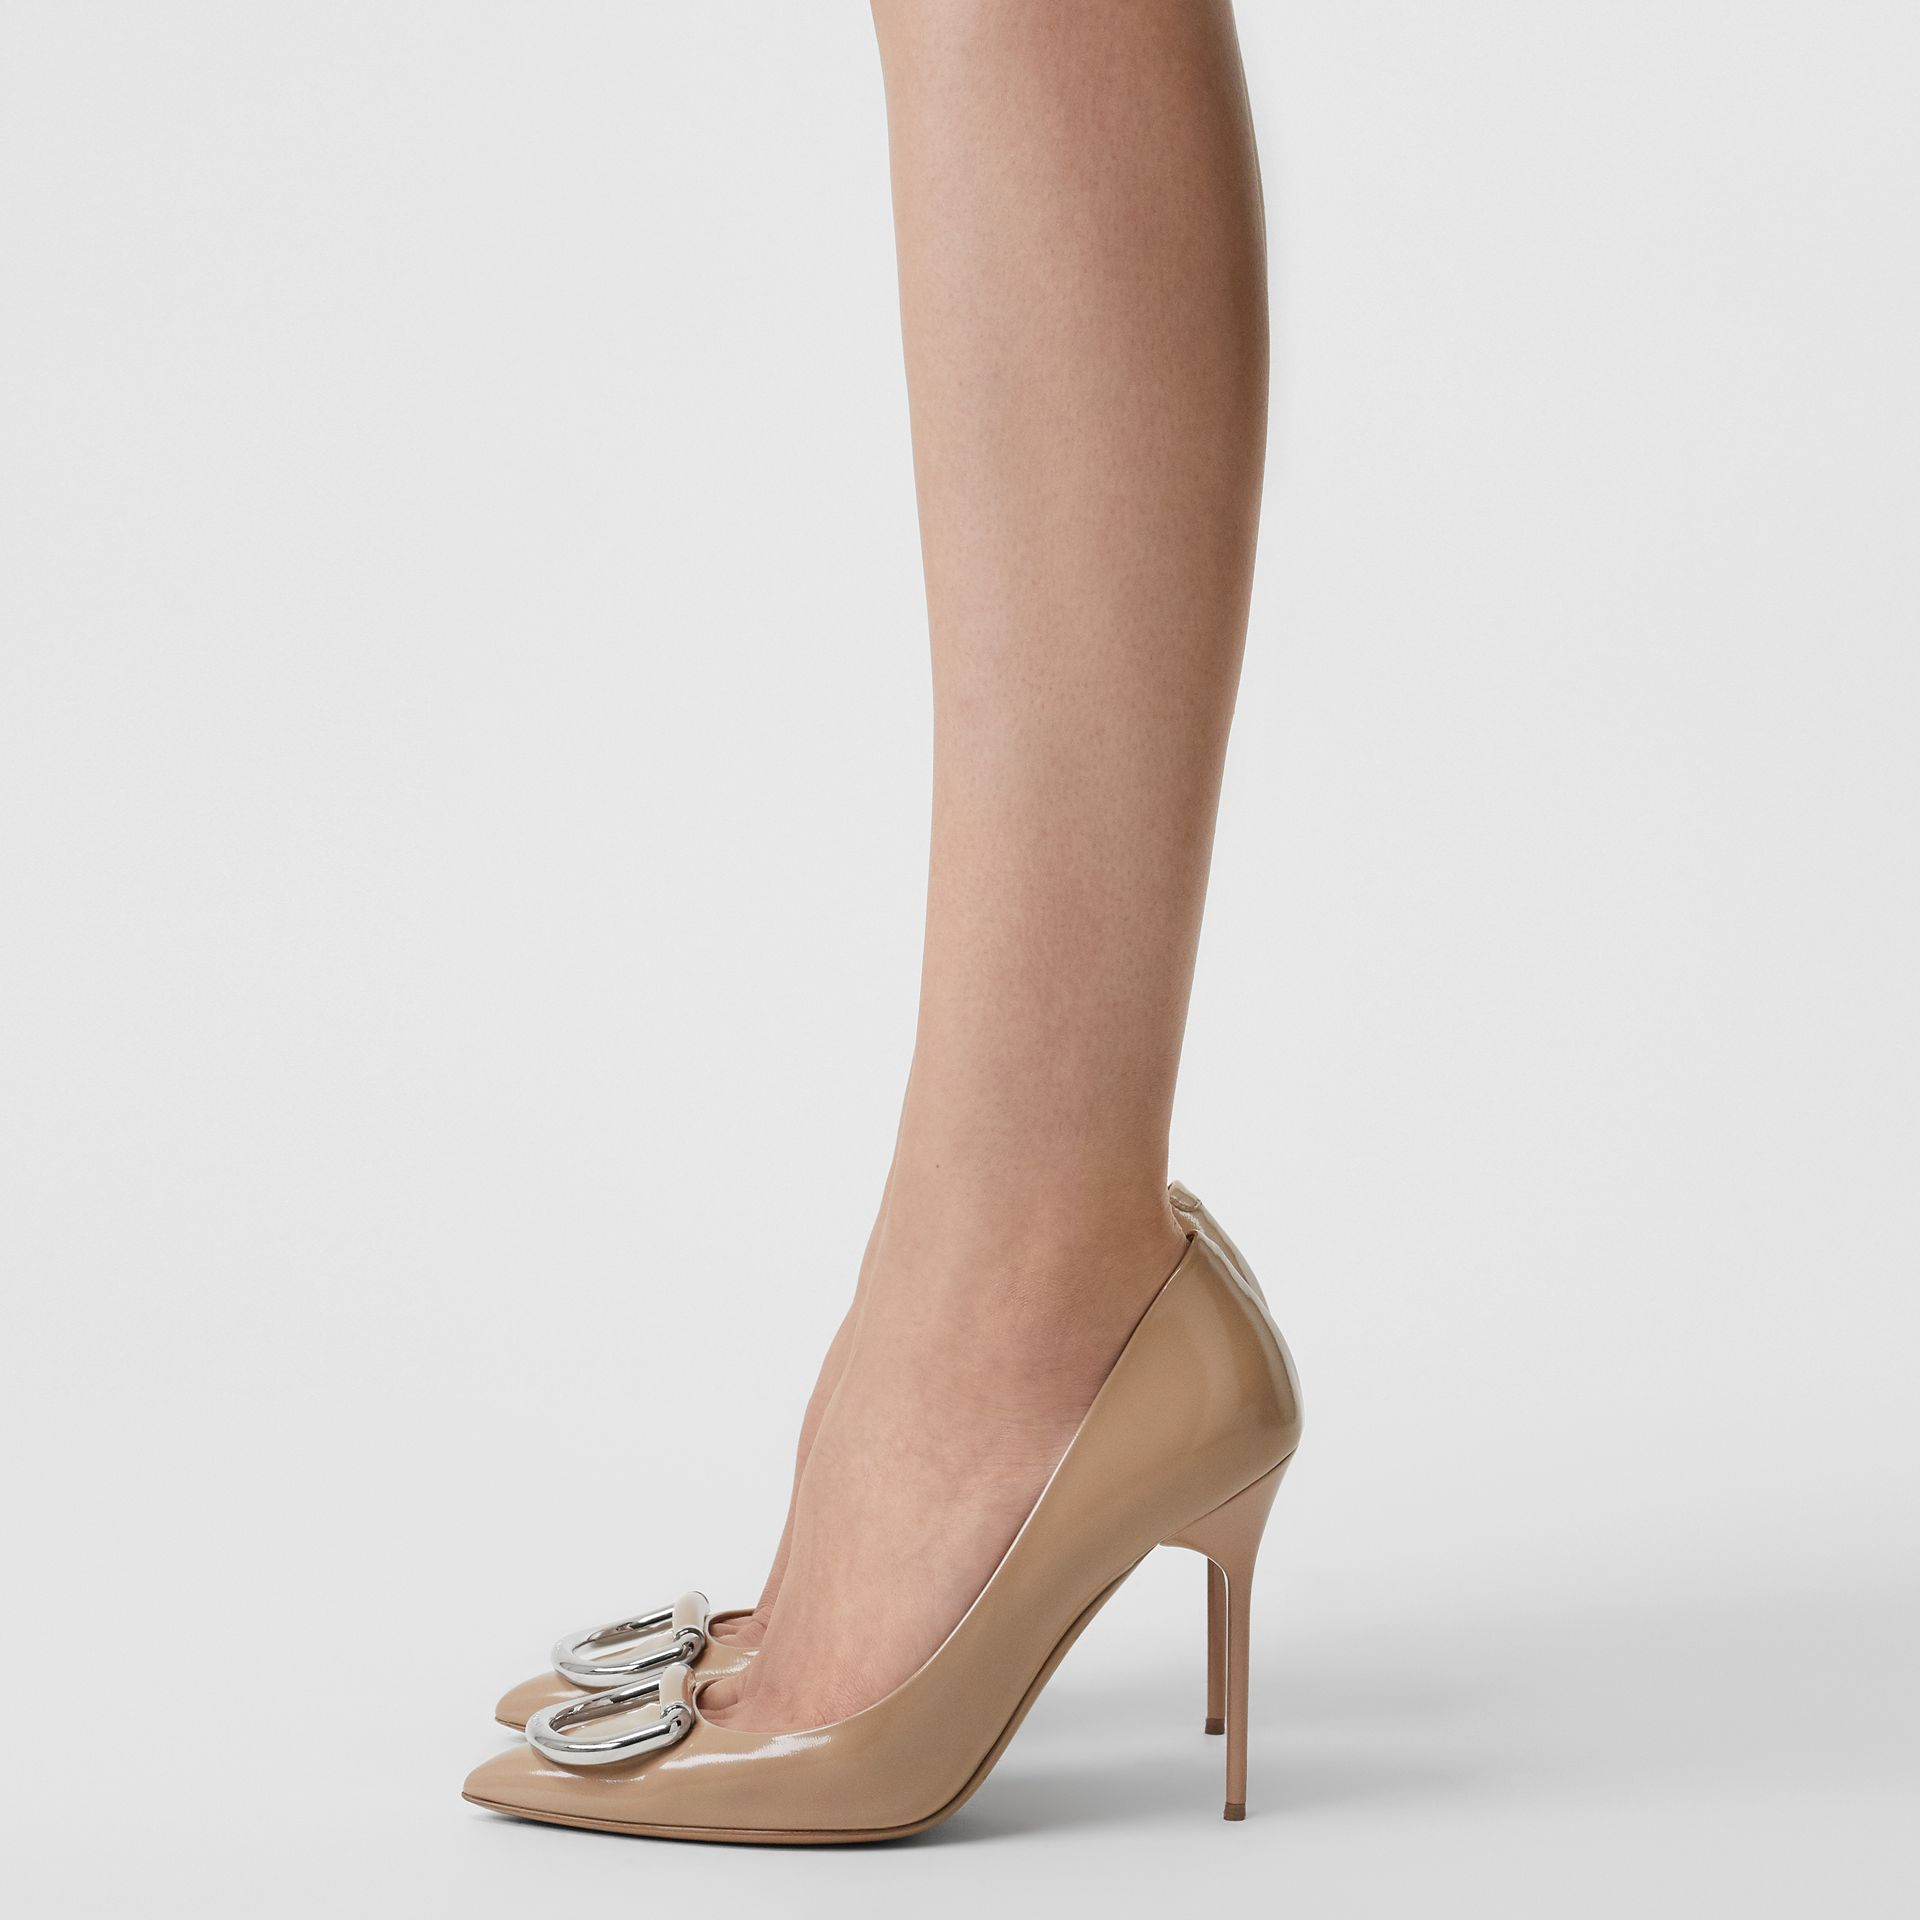 The Leather D-ring Stiletto in Nude Blush - Women | Burberry - gallery image 2